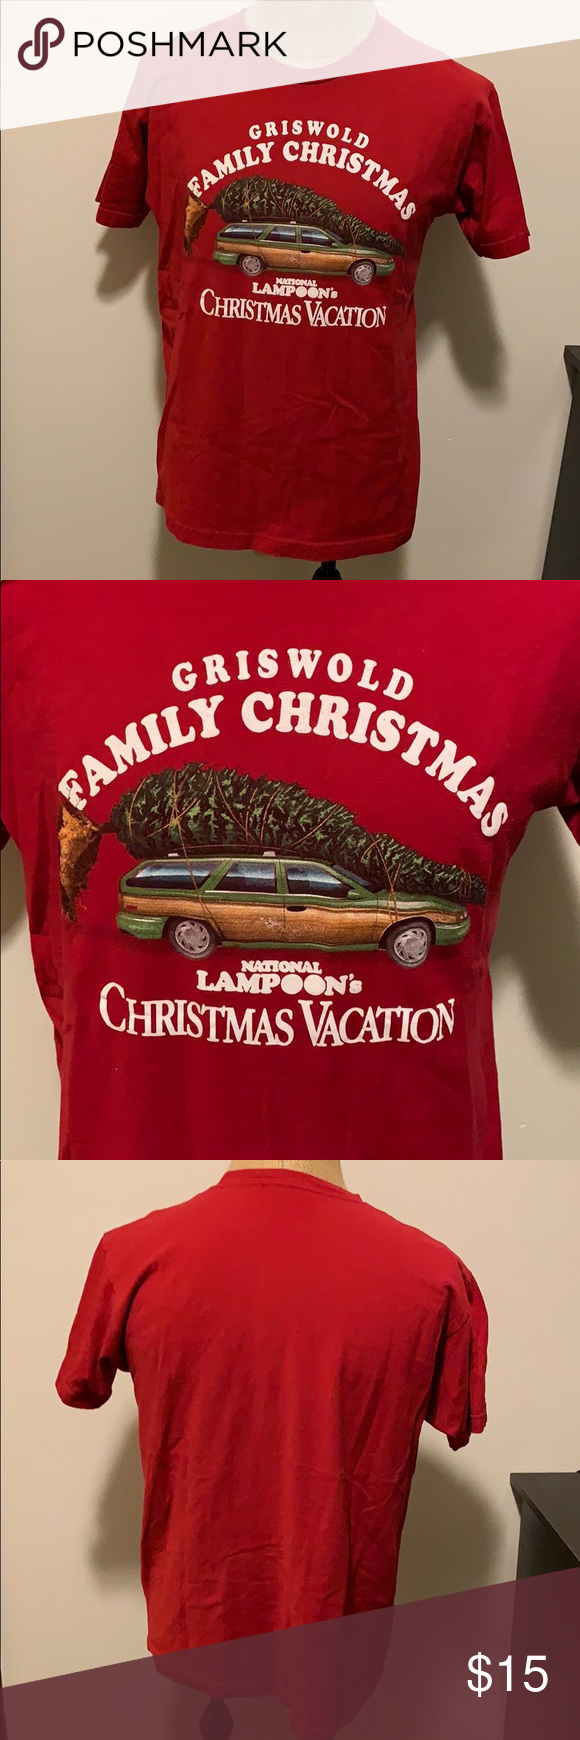 Griswold National Lampoon's Christmas Vacation Tee